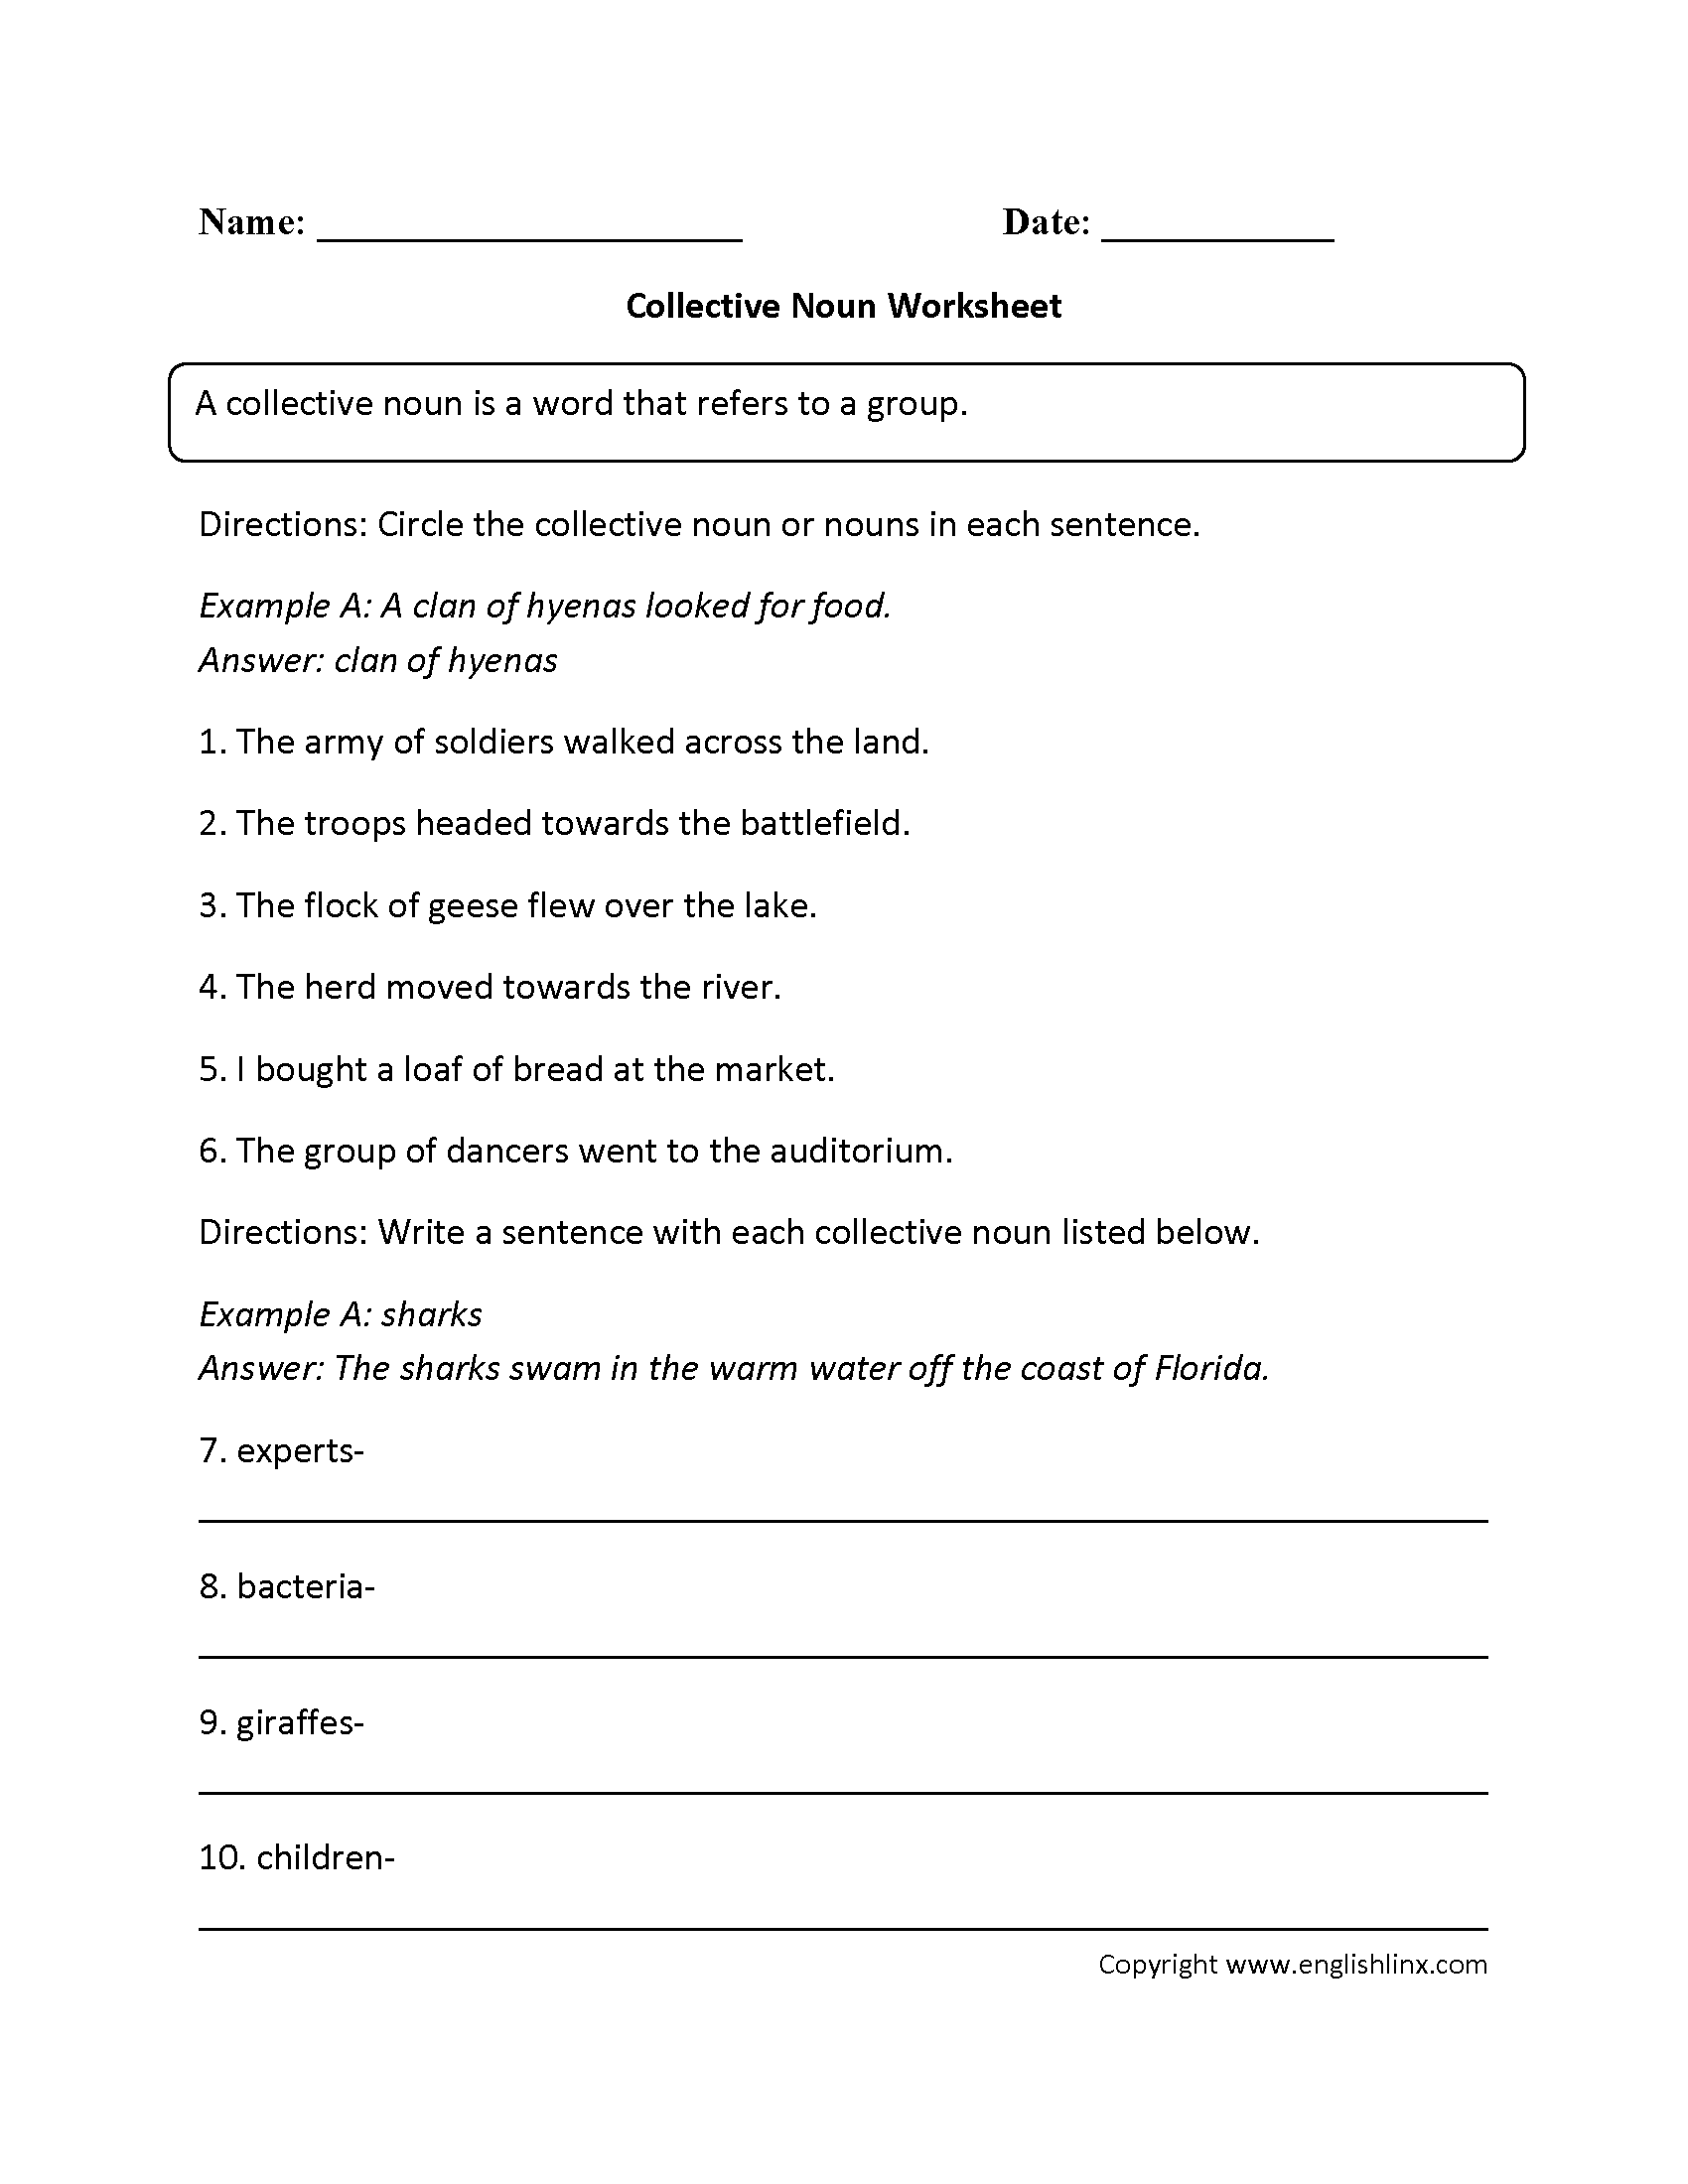 Worksheets Collective Noun Worksheet nouns worksheets collective worksheet